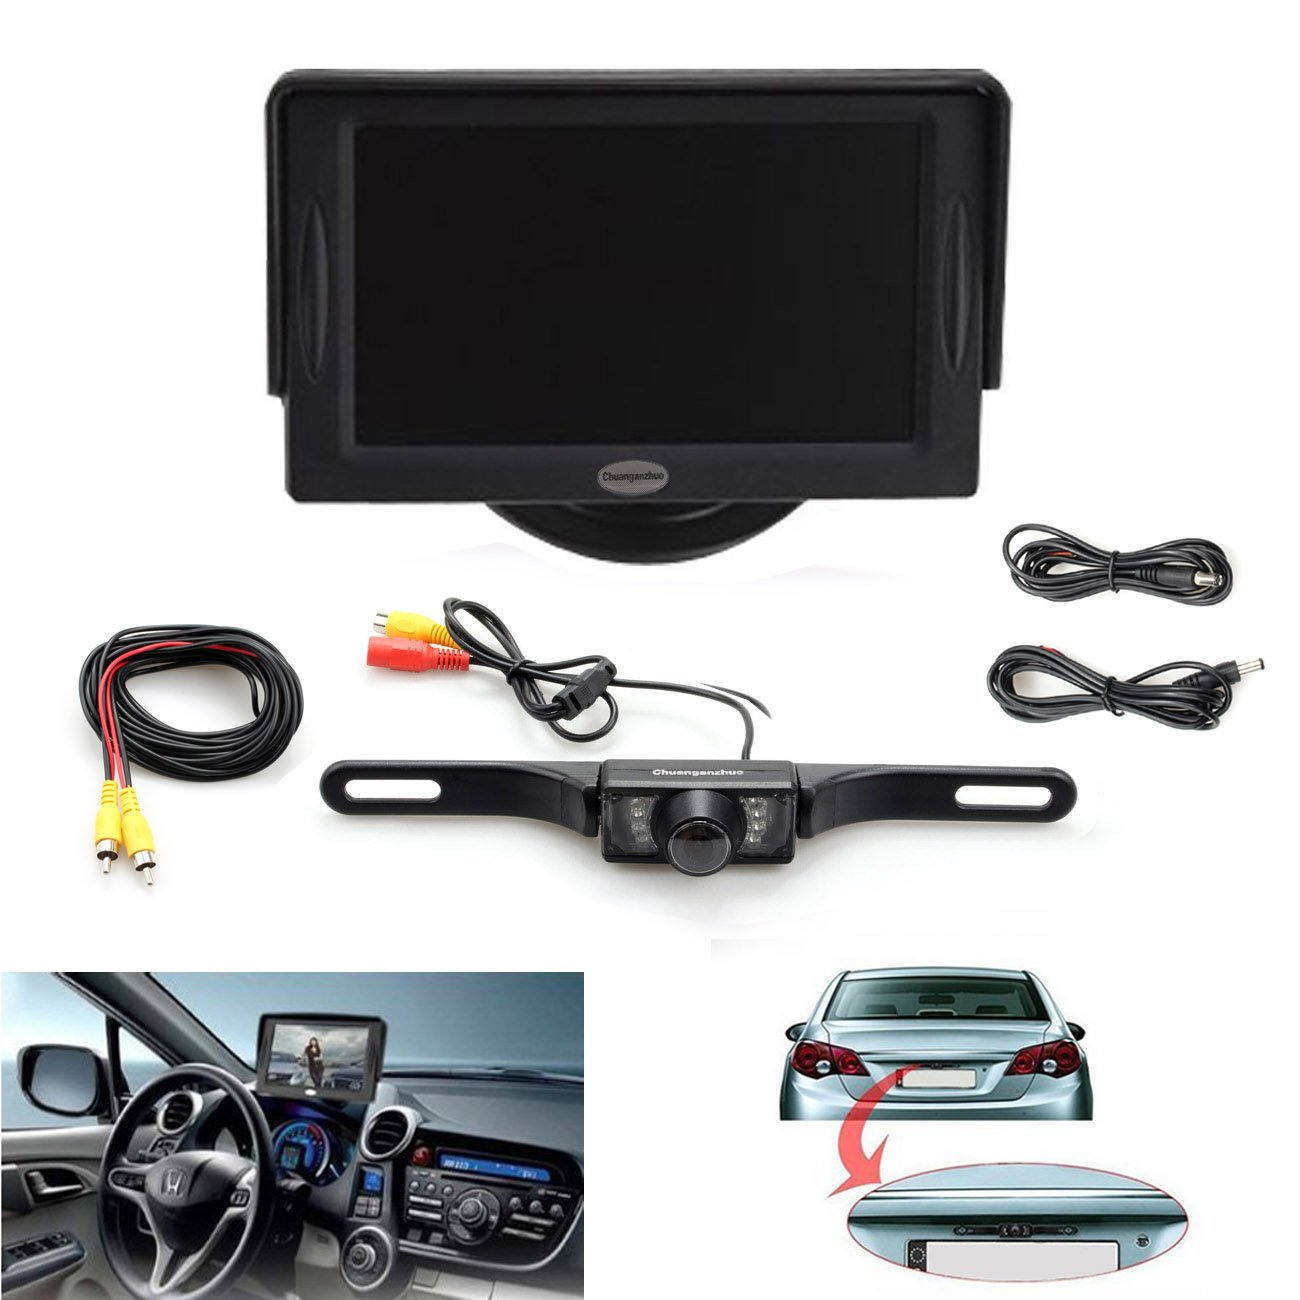 Backup Camera and Monitor Kit For Car,Universal Waterproof Rear-view License Plate Car Rear Backup Parking Camera + 4.3 TFT LCD Rear View Monitor Screen 3 in1 special rear view camera wireless receiver mirror monitor back up parking system for citroen ds3 ds 3 2009 2015